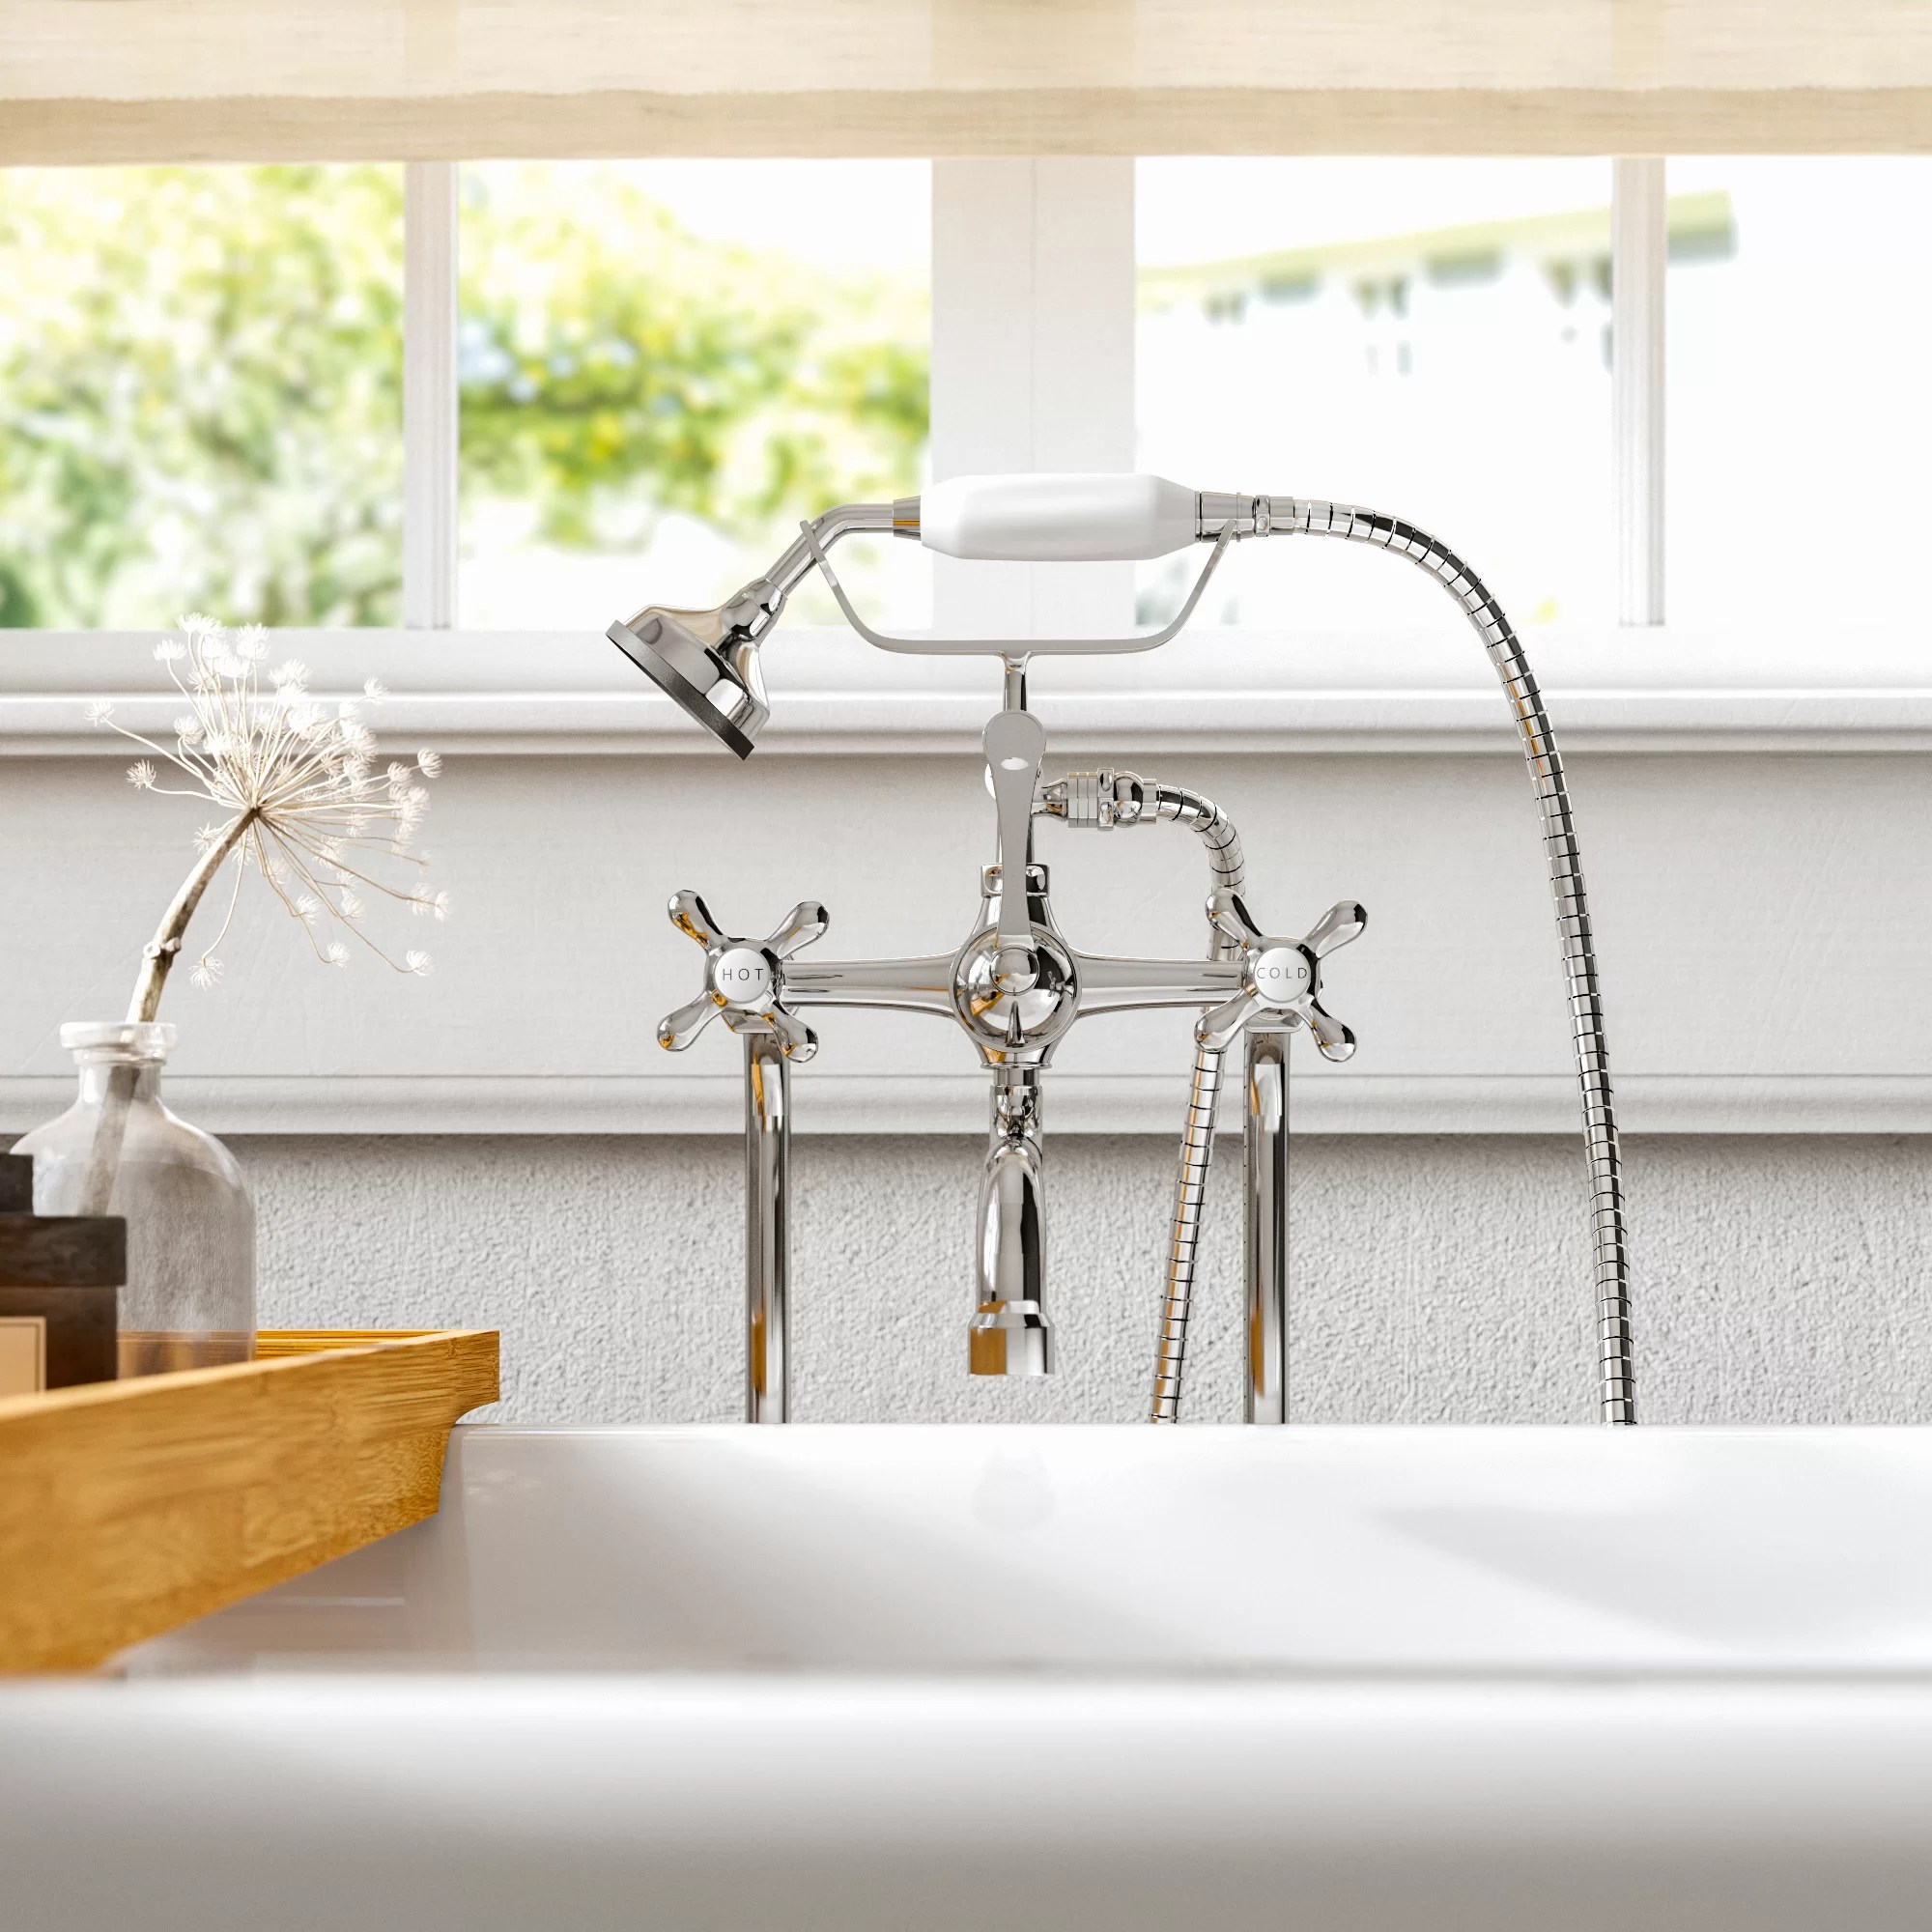 double handle wall mounted freestanding tub filler trim with diverter and handshower